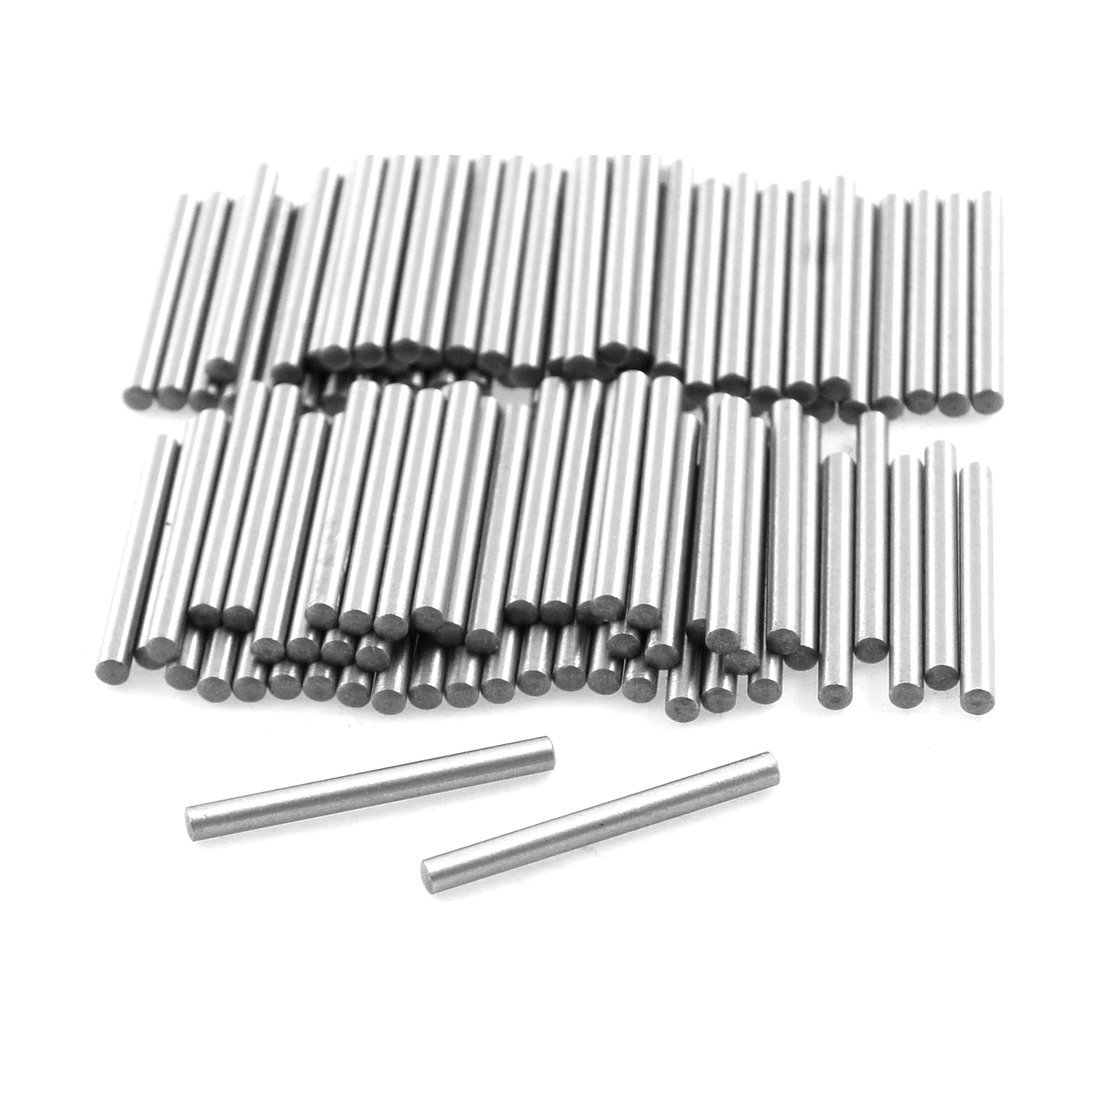 100 Pcs Stainless Steel 1.5mm x 15.8mm Dowel Pins Fasten Elements Sourcingmap a12042300ux0551